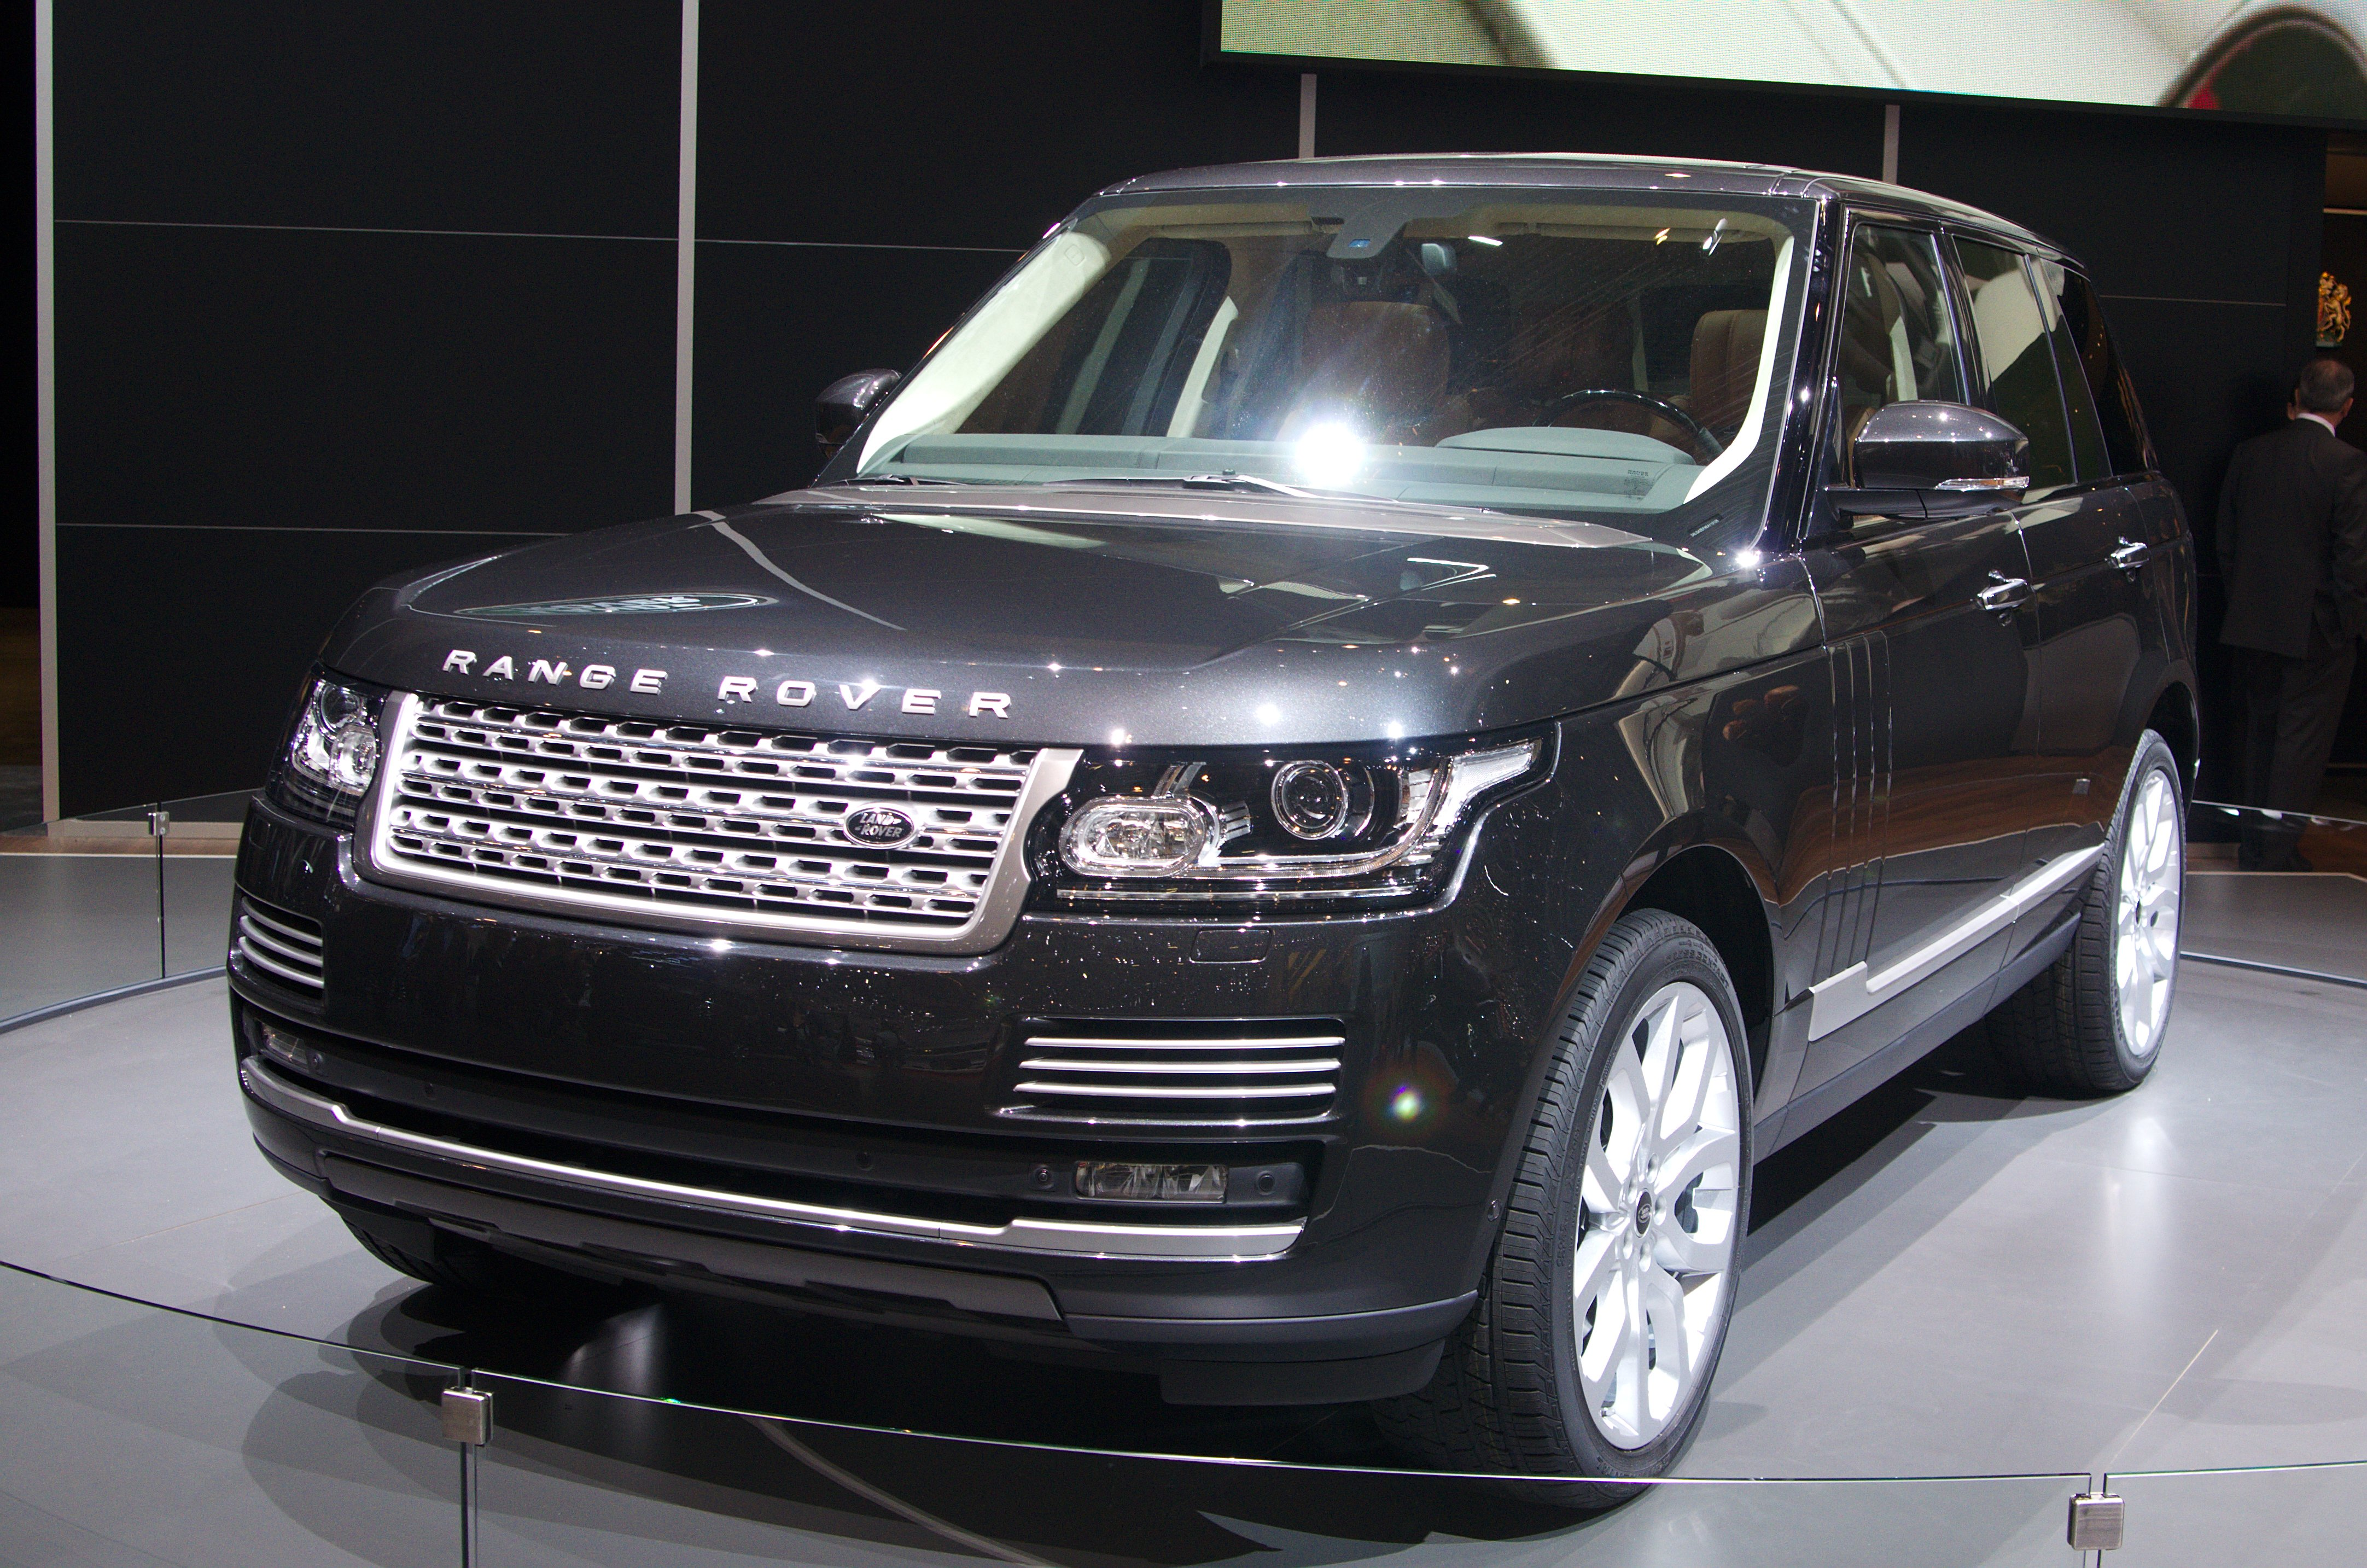 land rover range rover pictures #13